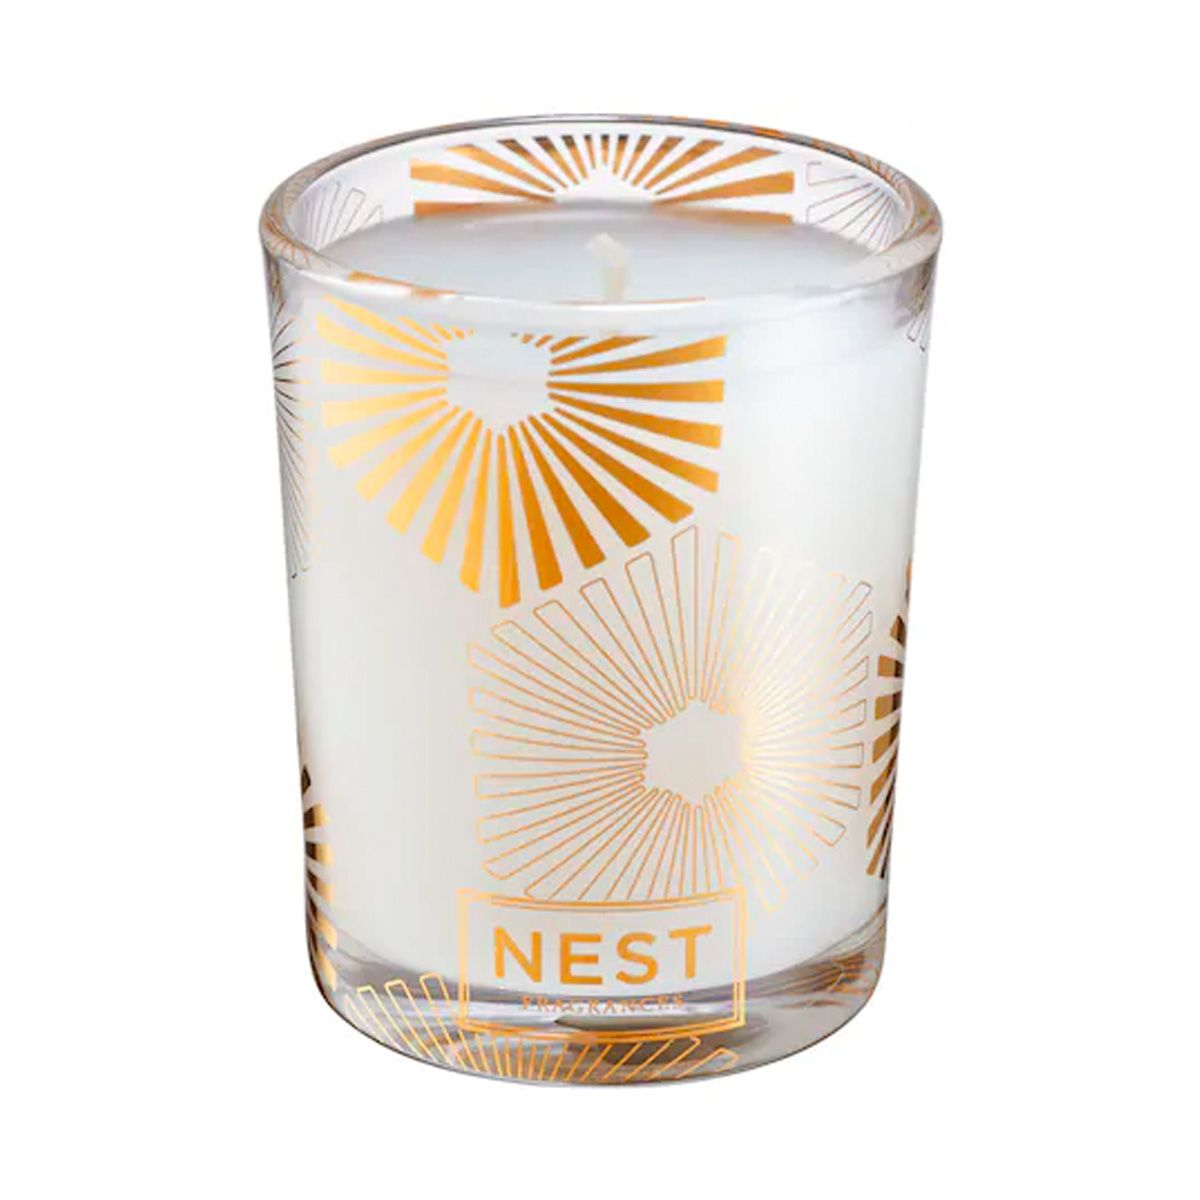 gifts under $20 nest candle